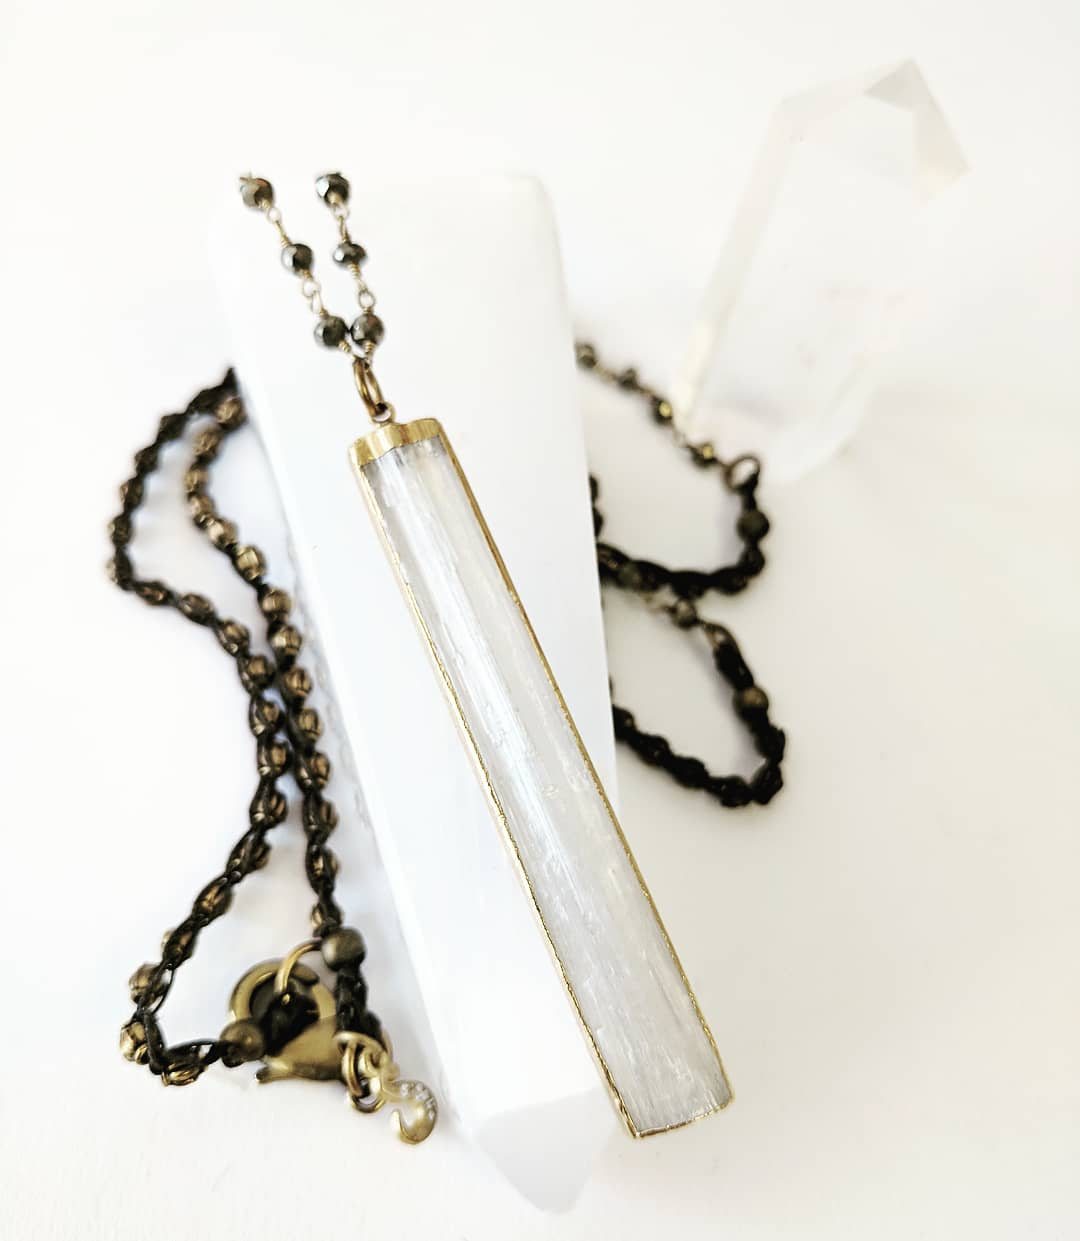 Selenite pendant necklace